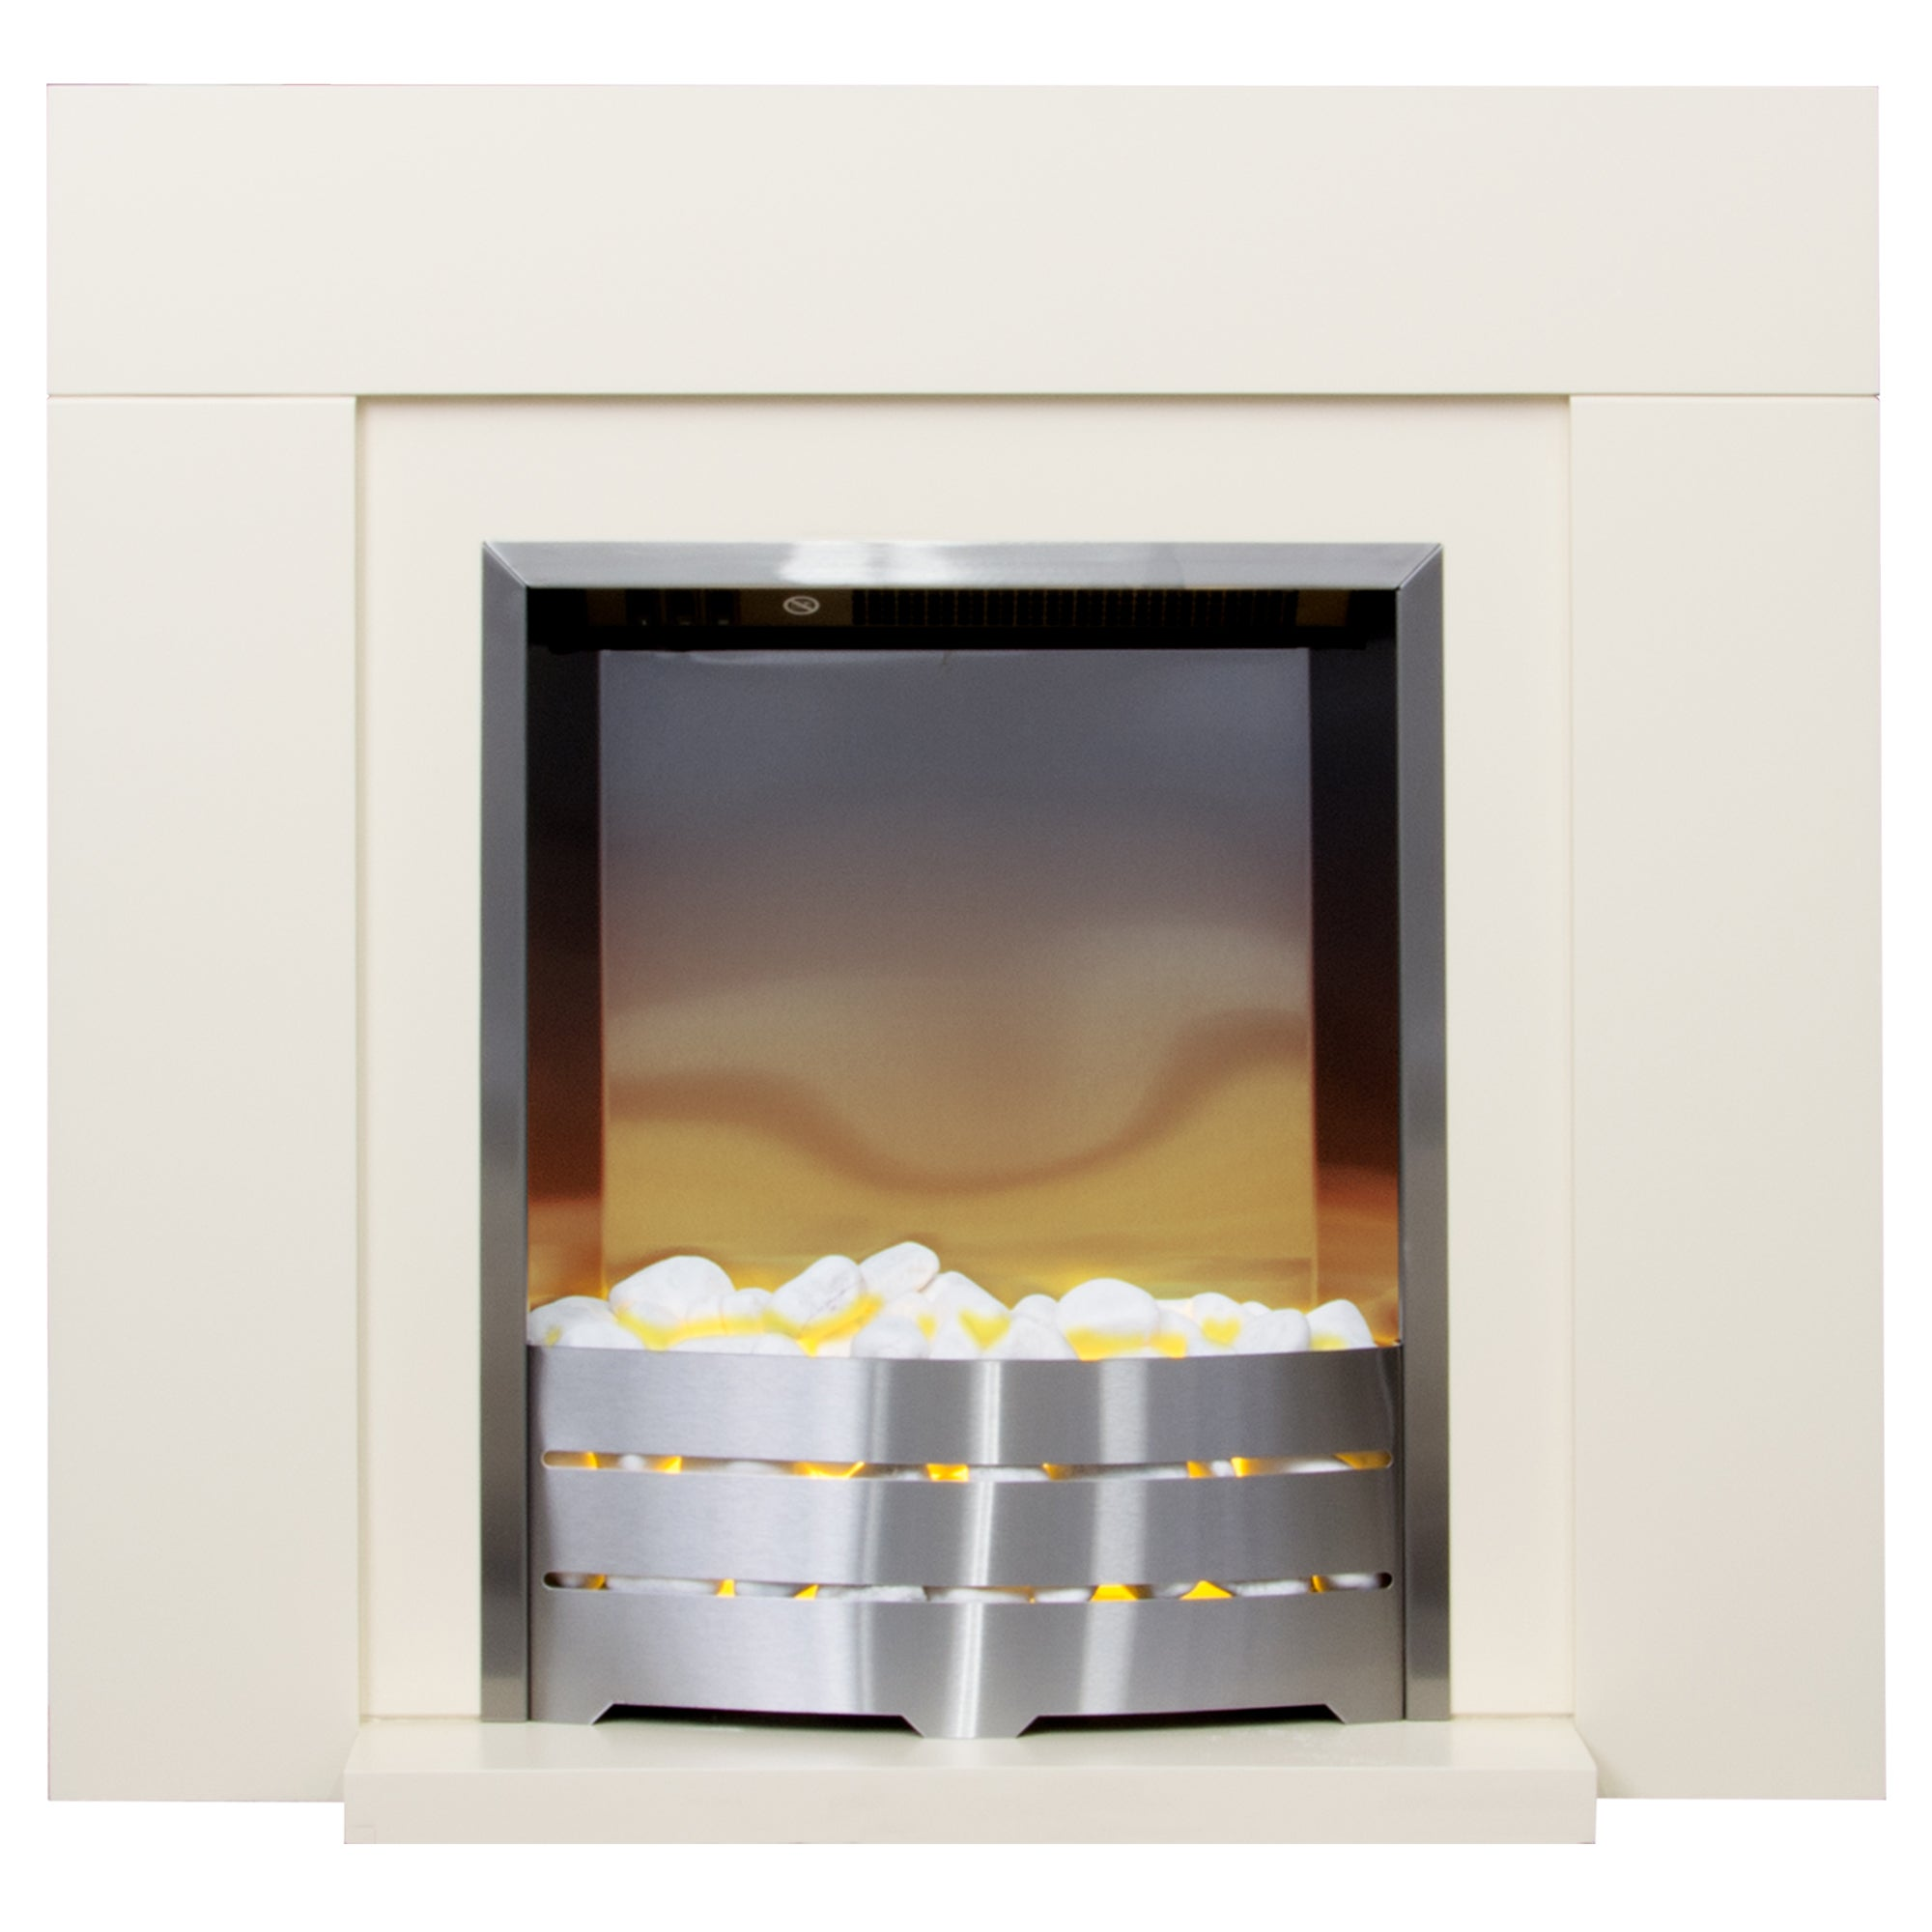 2000W Caprice Cream Electric Fireplace Suite Off-White